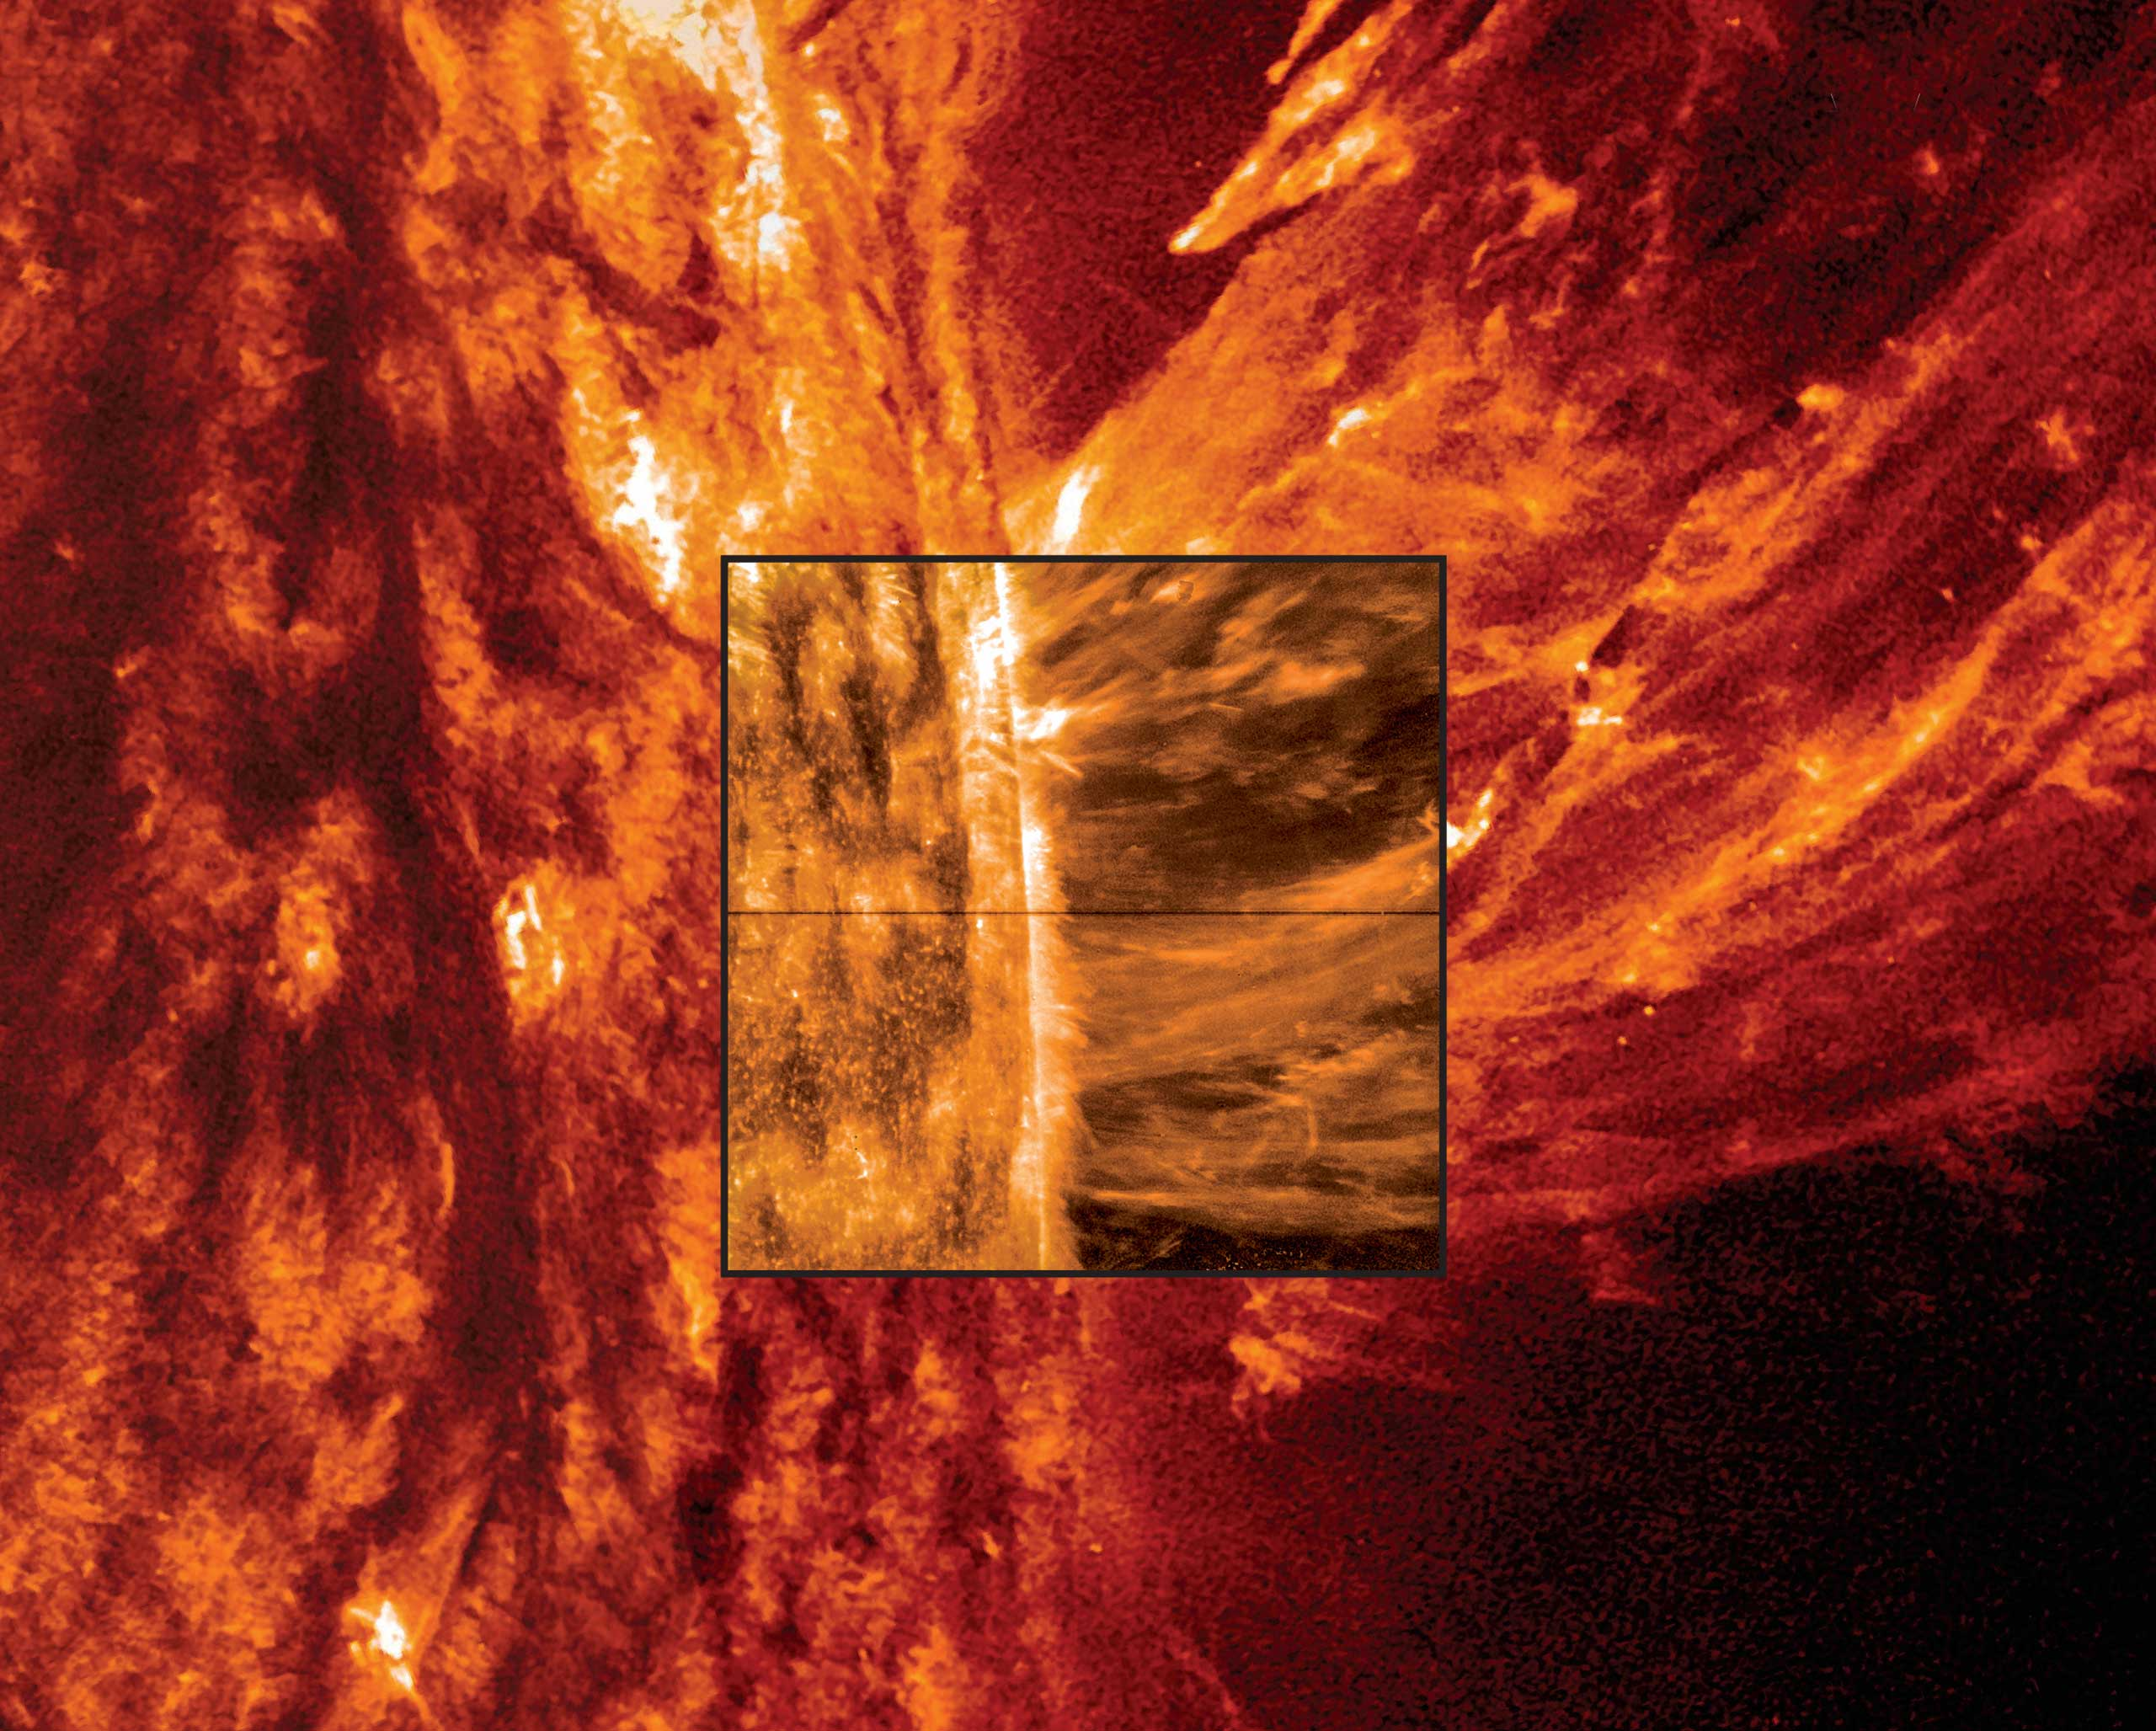 NASA's Solar Dynamics Observatory provided the outer image of a coronal mass ejection on the surface of the sun on May 9, 2014.